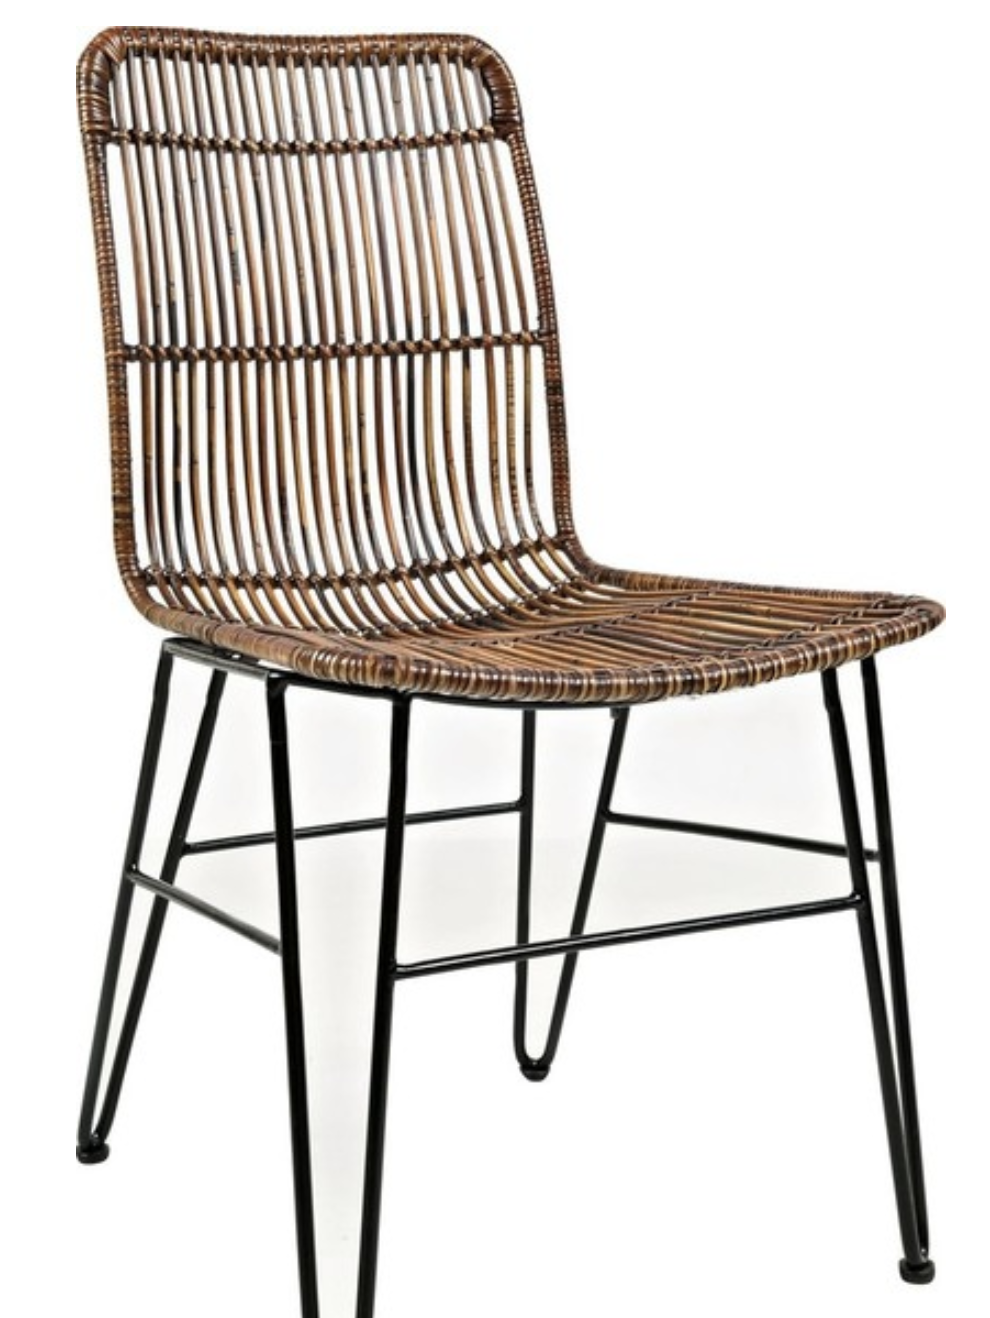 urban-dweller-wicker-arm-chair